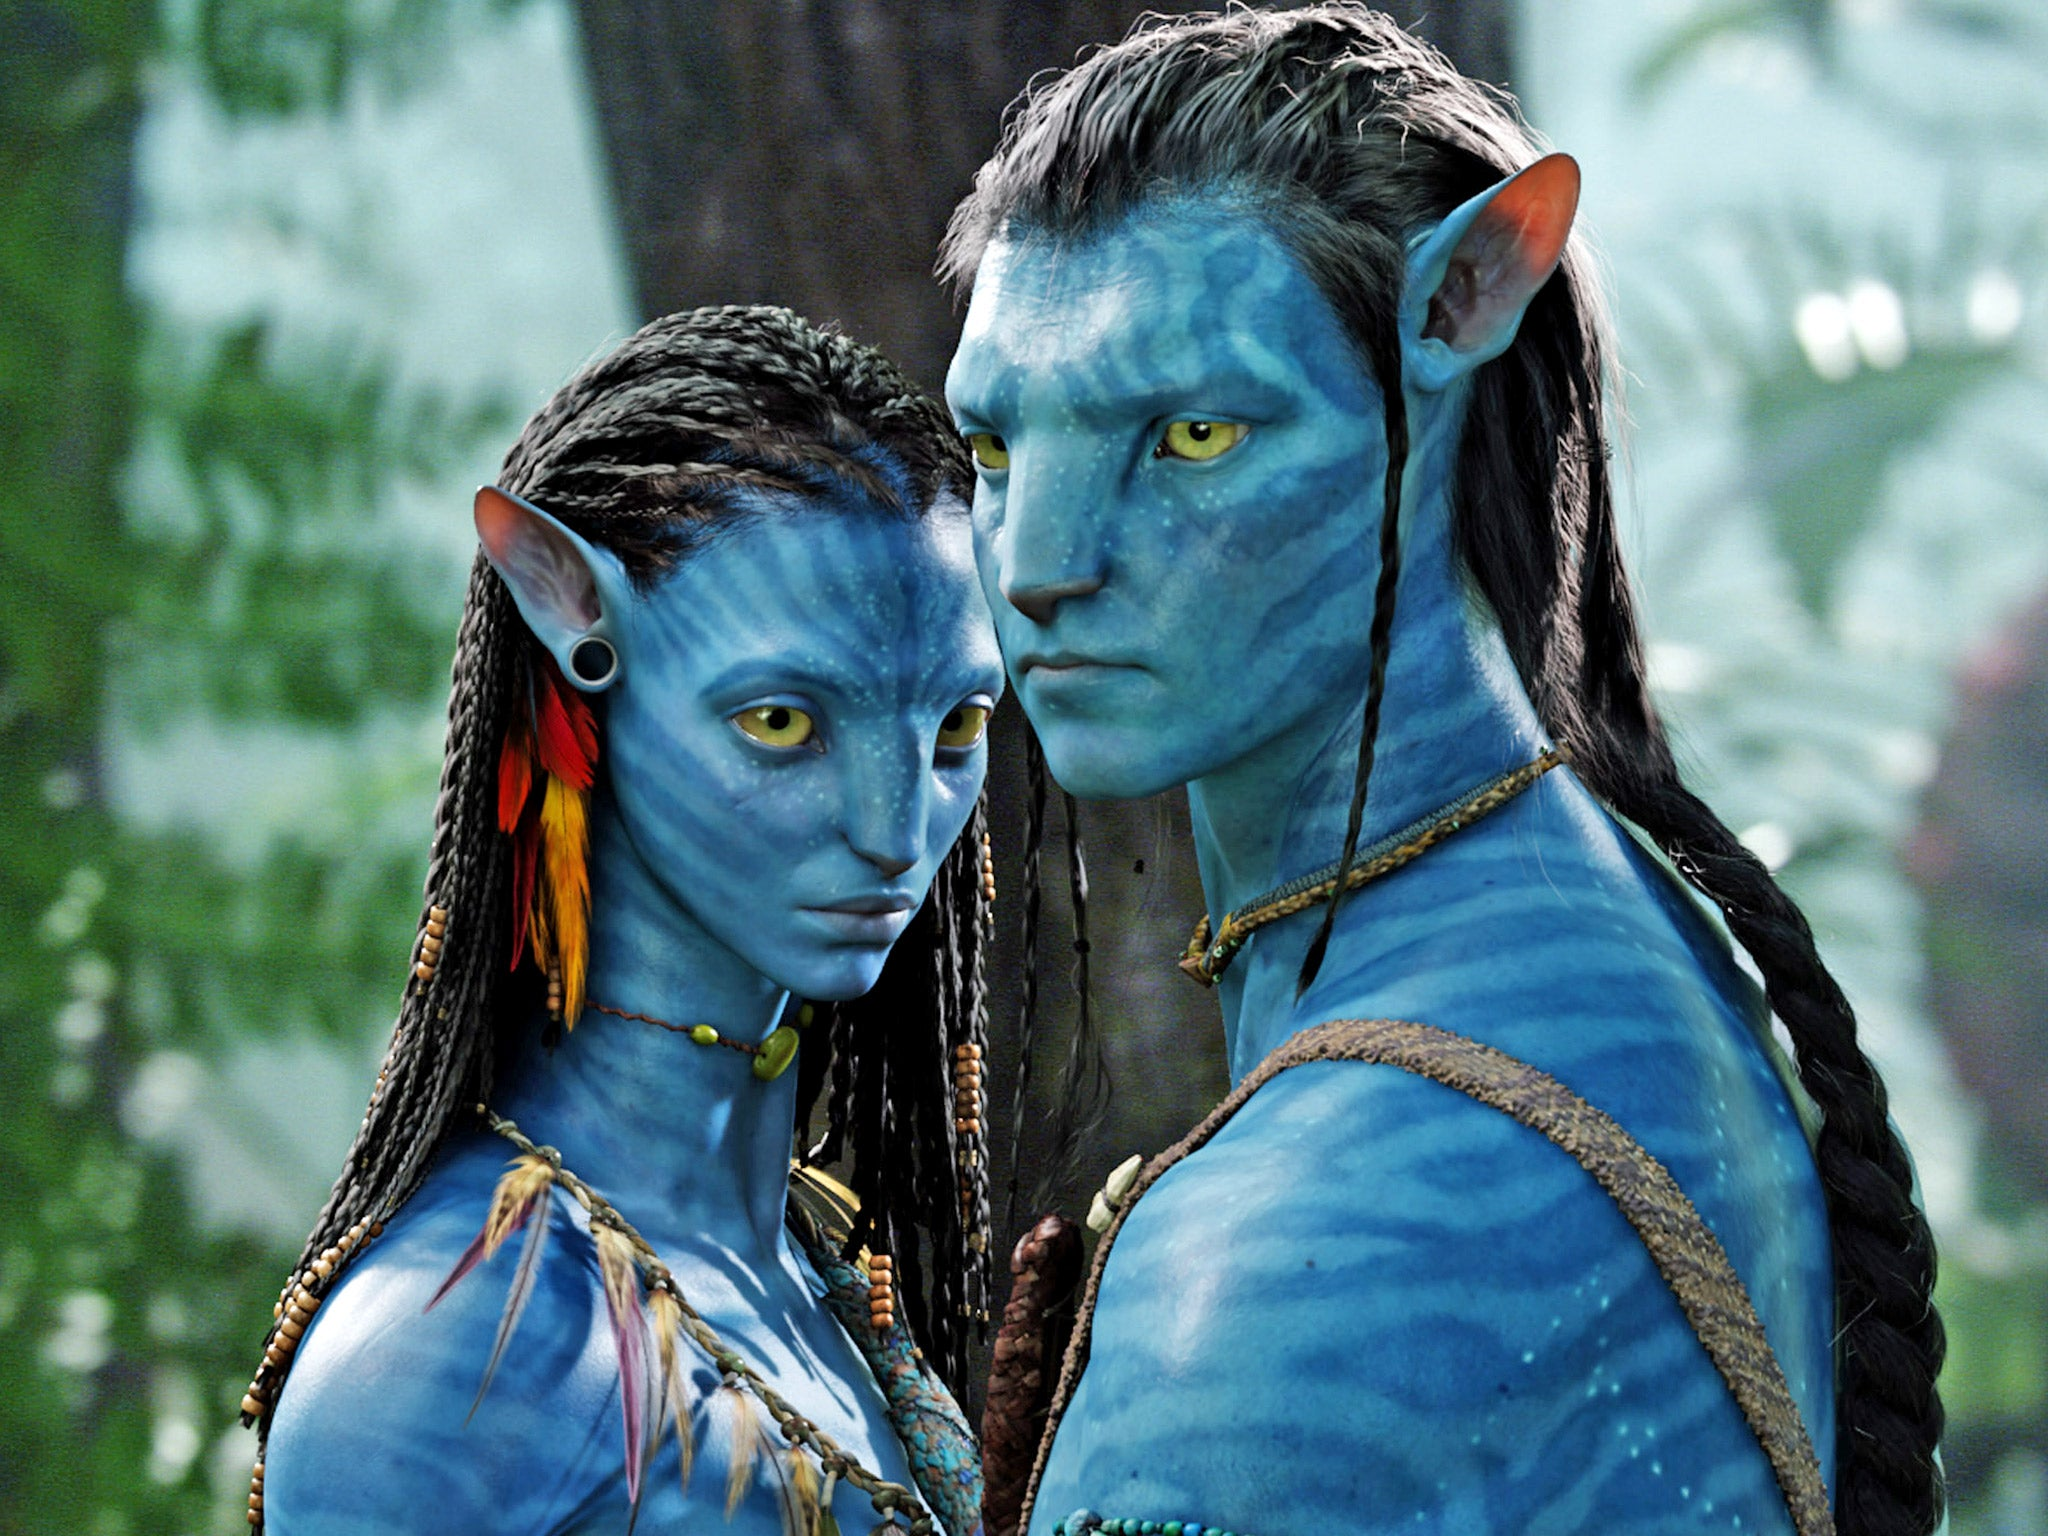 avatar 2, 3, 4 and 5 filmmaker james cameron finally admits he